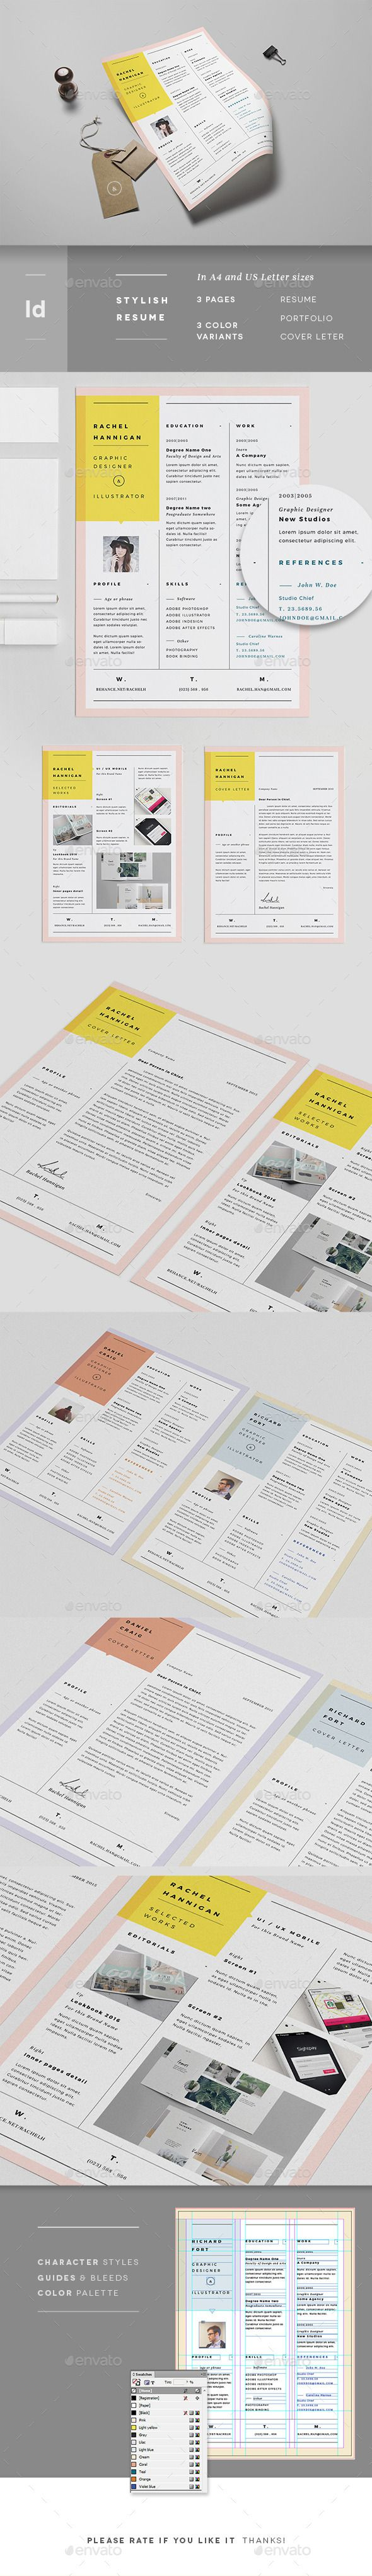 Pages Minimal Resume Portfolio  Letter  Minimal Indesign